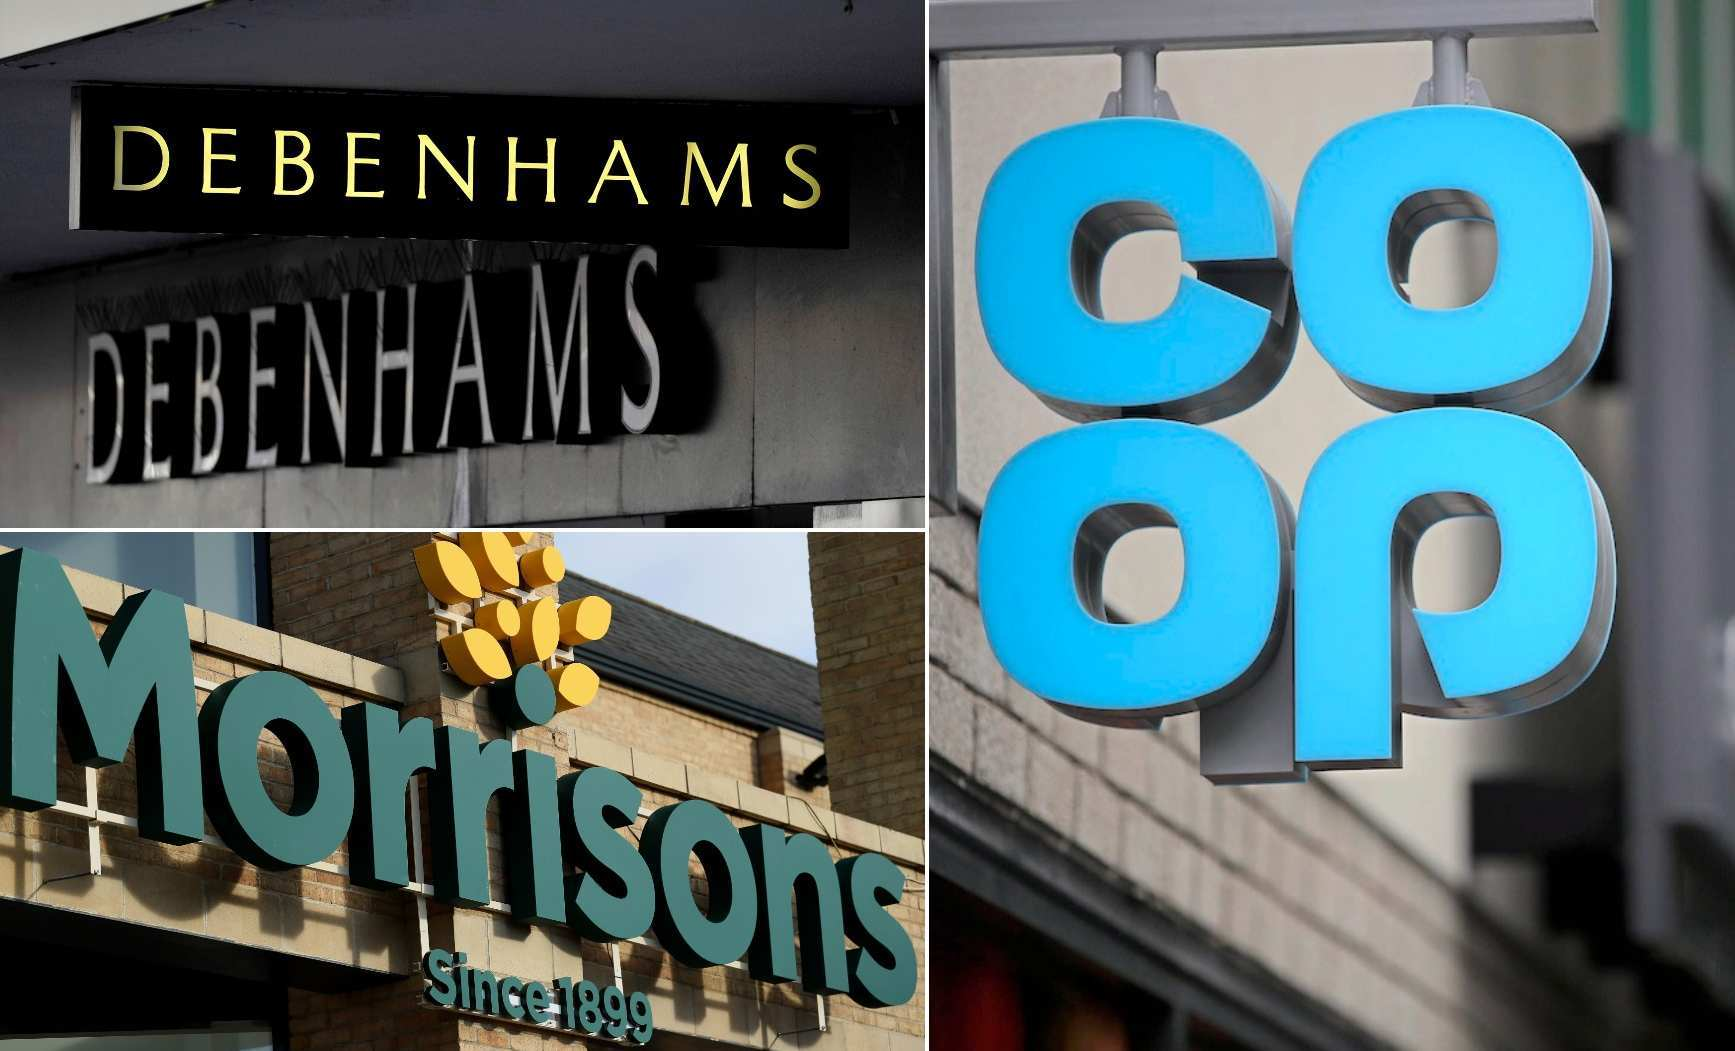 Shoplifter is banned from every Co-op, Morrisons and Debenhams in England and Wales